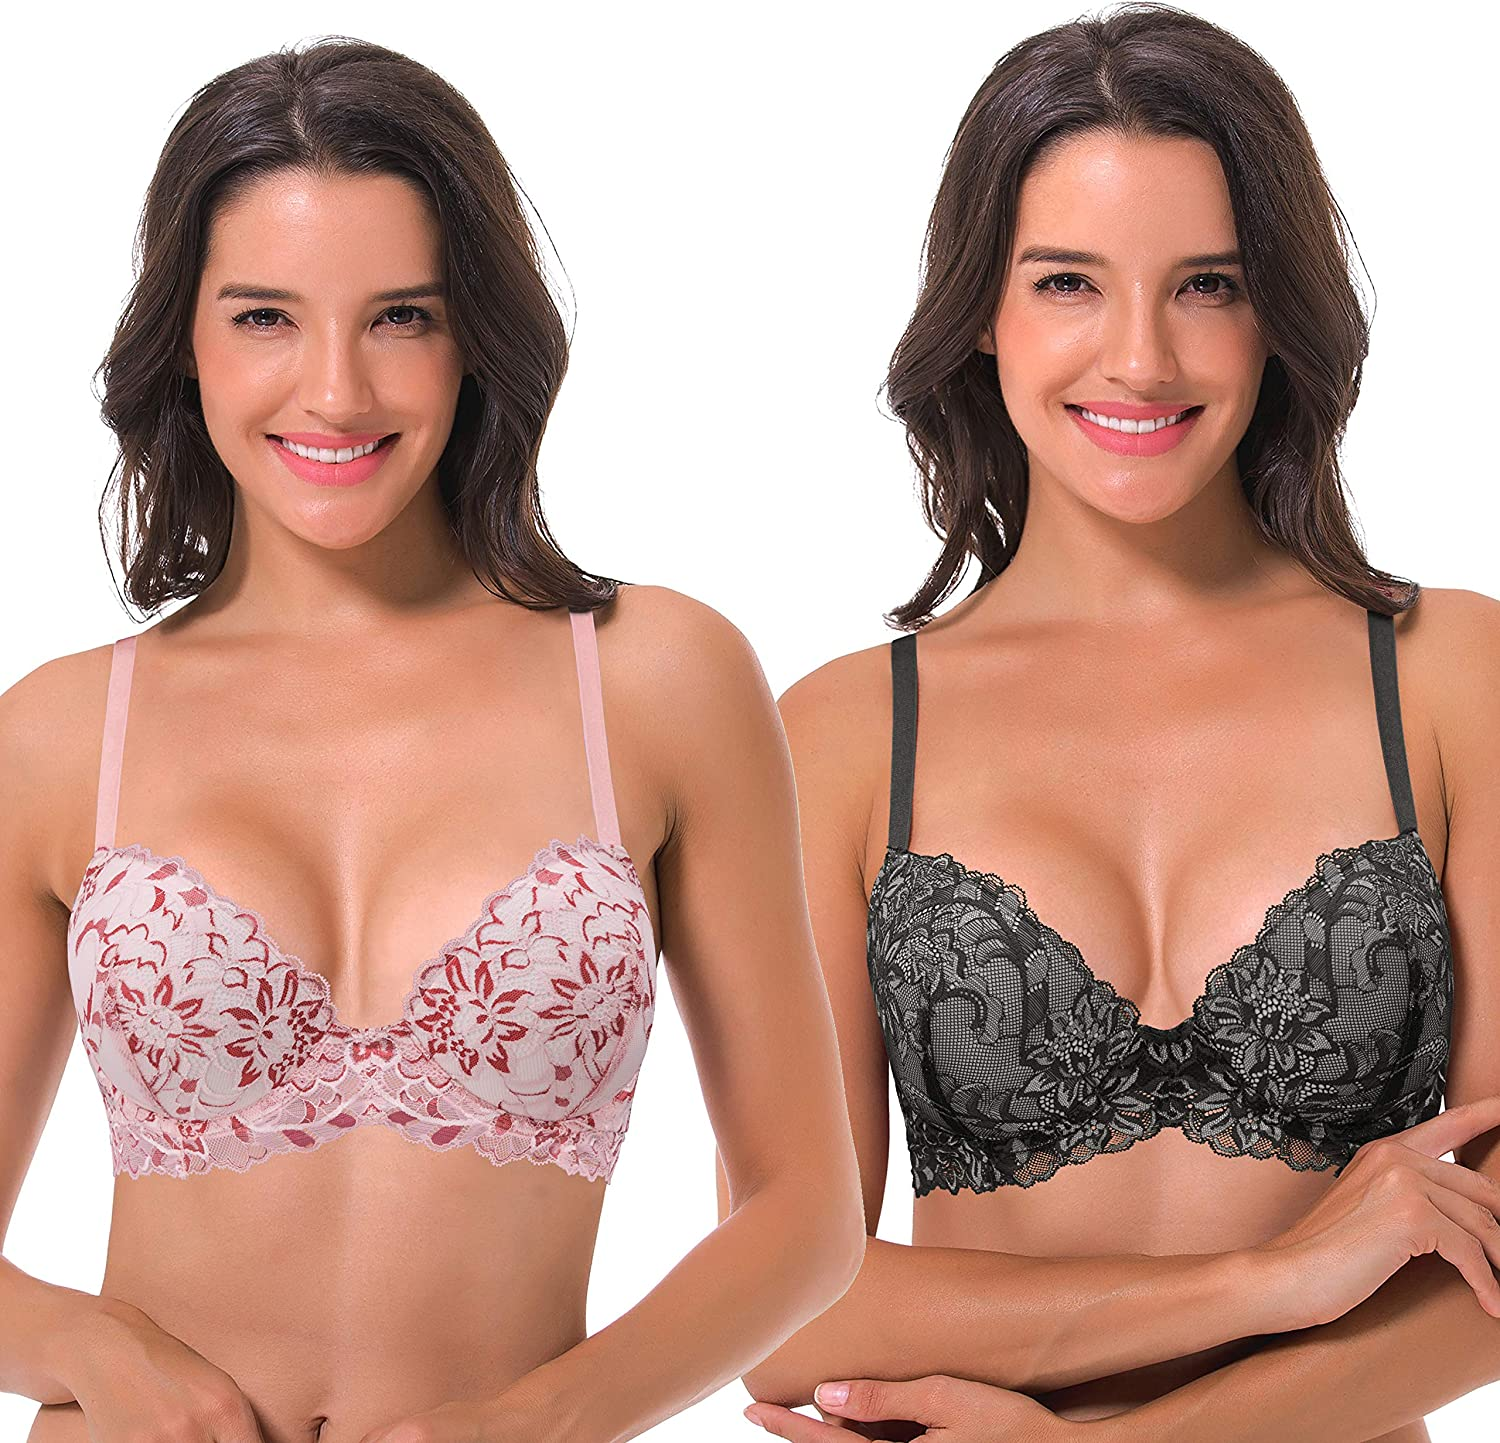 Curve Muse Women's Underwire Plus Size Push Up Add 1 and a Half Cup Lace Bras